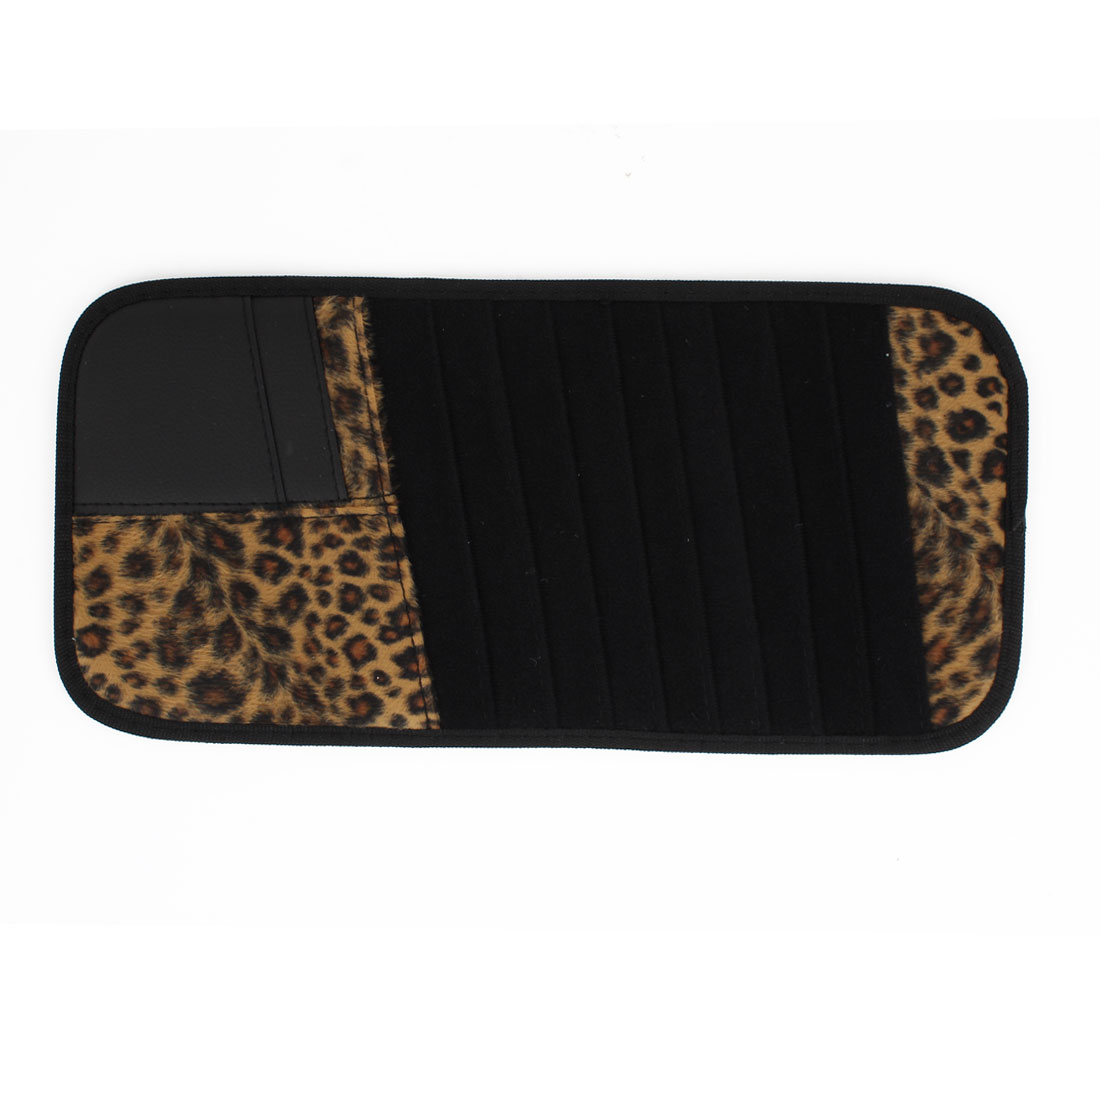 Vehicle Car Sun Visor Black Brown Leopard Pattern 8pcs CD DVD Storage Card Holder Case